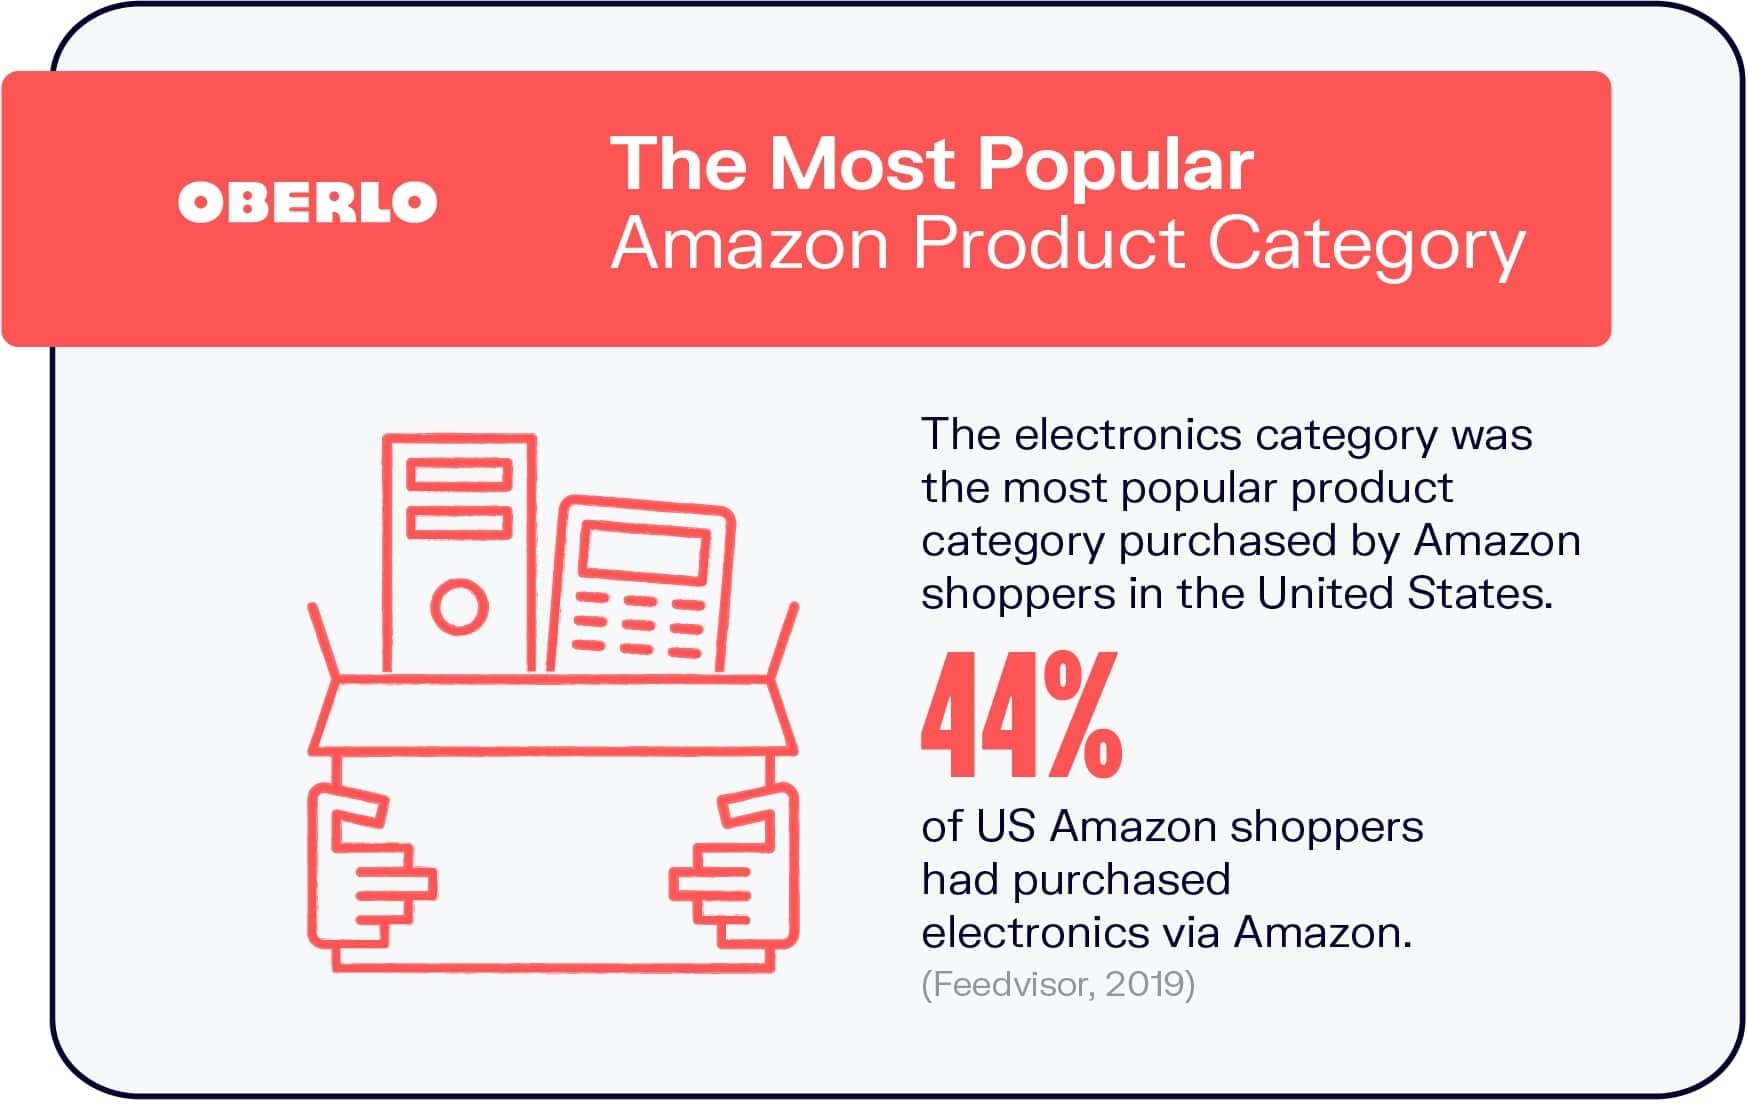 The Most Popular Amazon Product Category